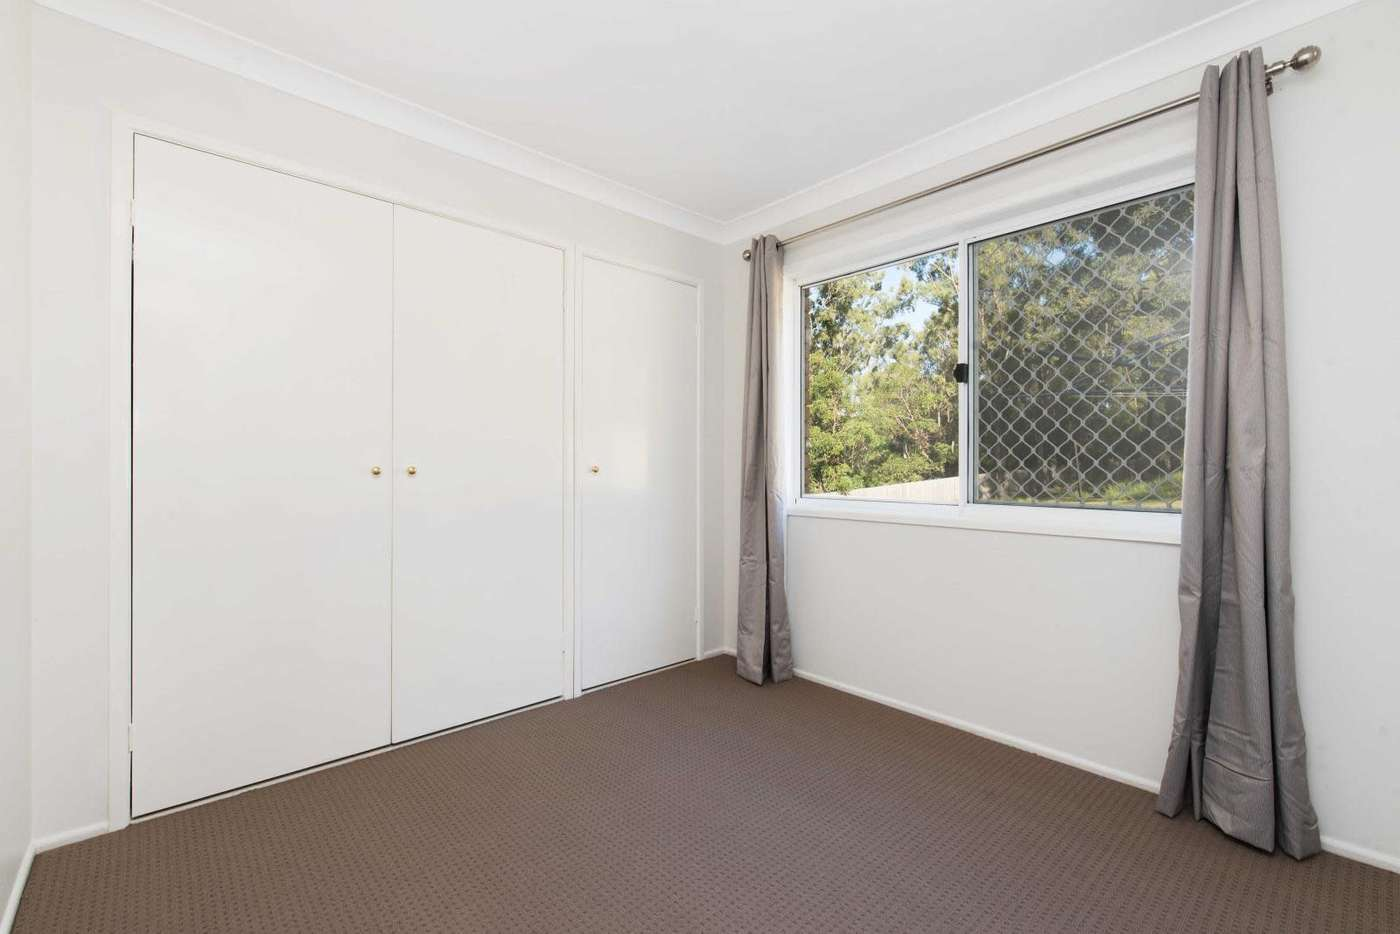 Sixth view of Homely house listing, 13 Narcamus Crescent, Shailer Park QLD 4128